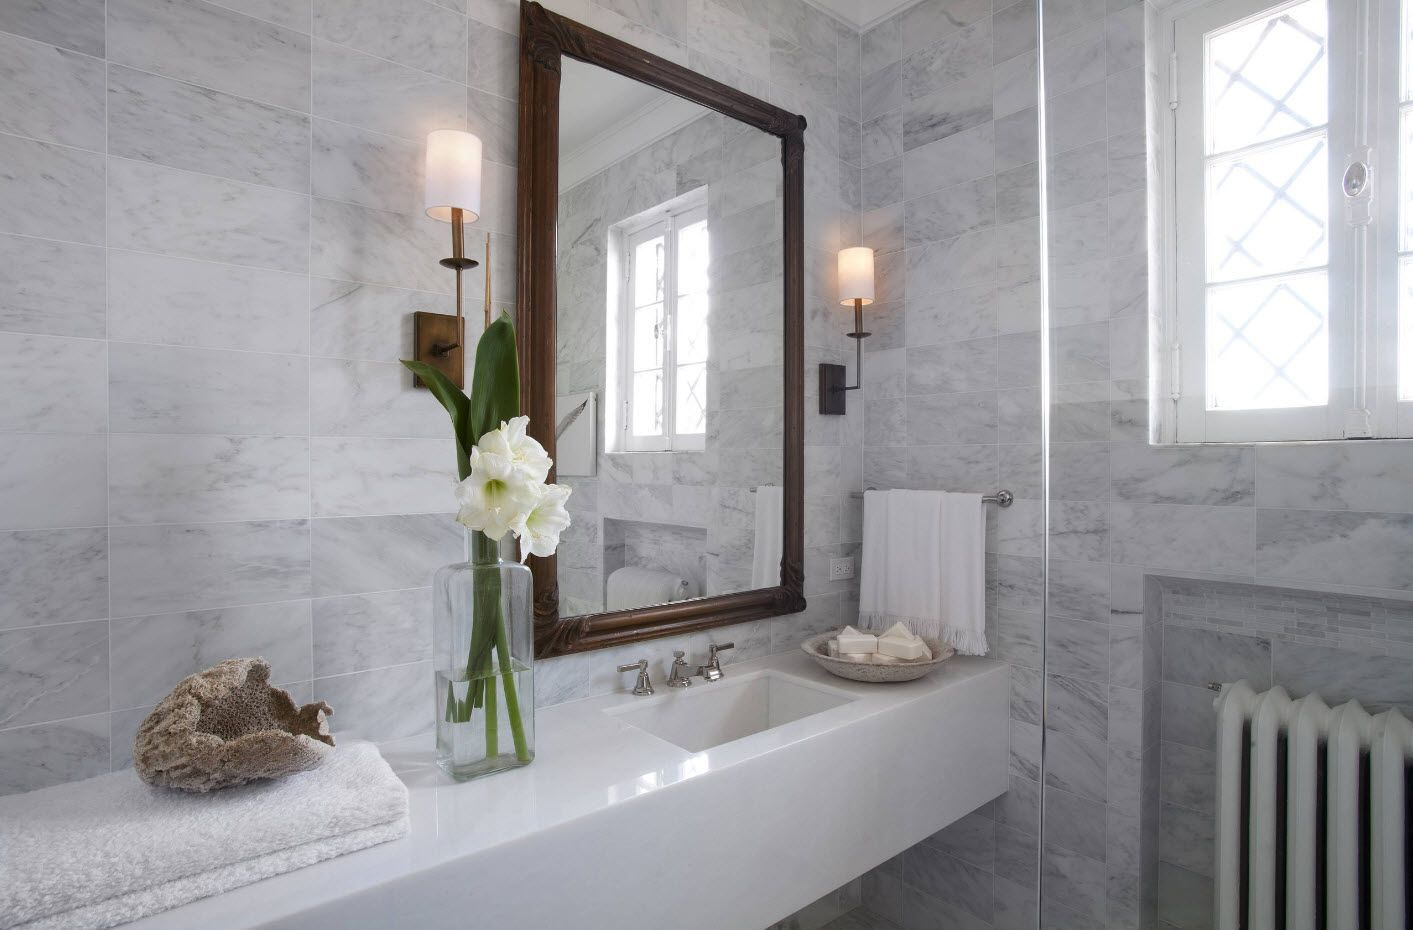 Marble and flower in the bathroom creates the atmosphere of coziness